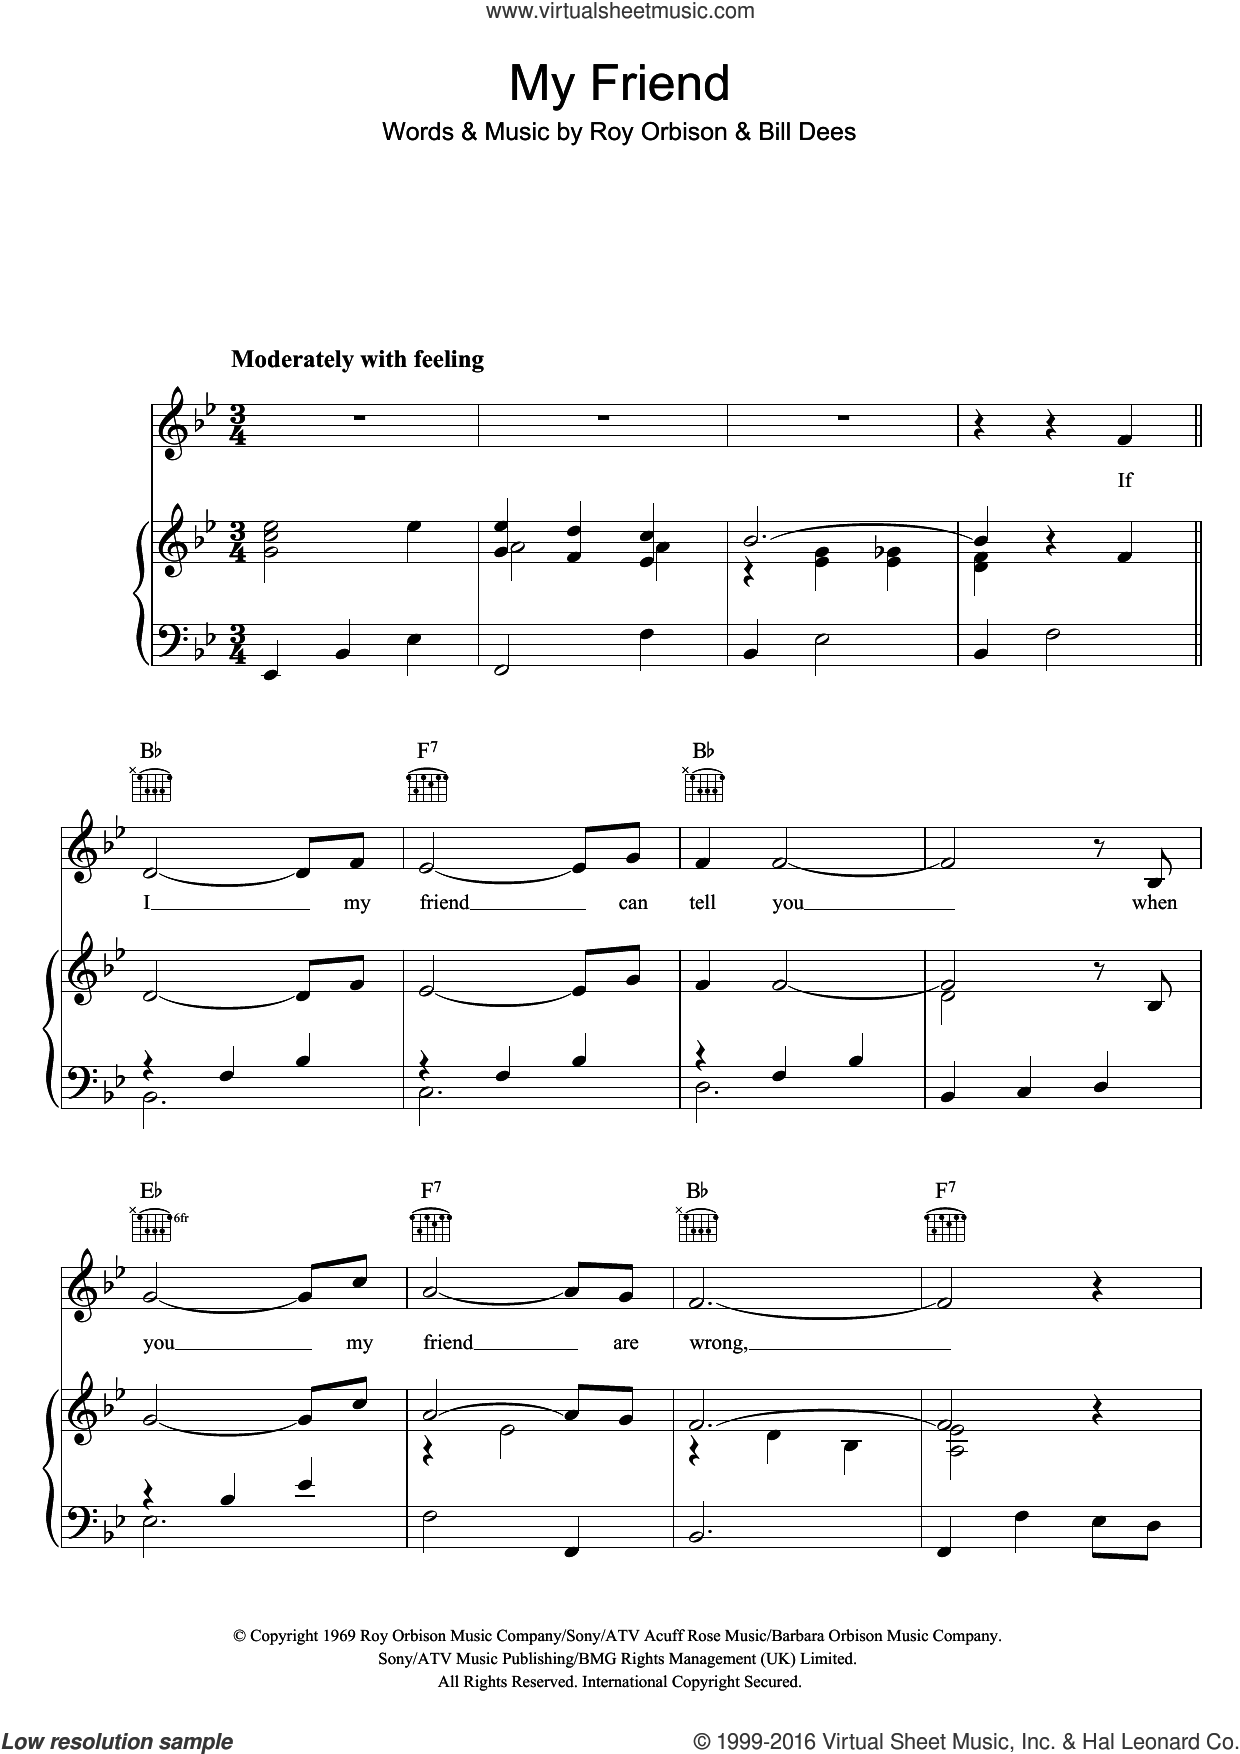 My Friend sheet music for voice, piano or guitar by Roy Orbison and Bill Dees, intermediate skill level